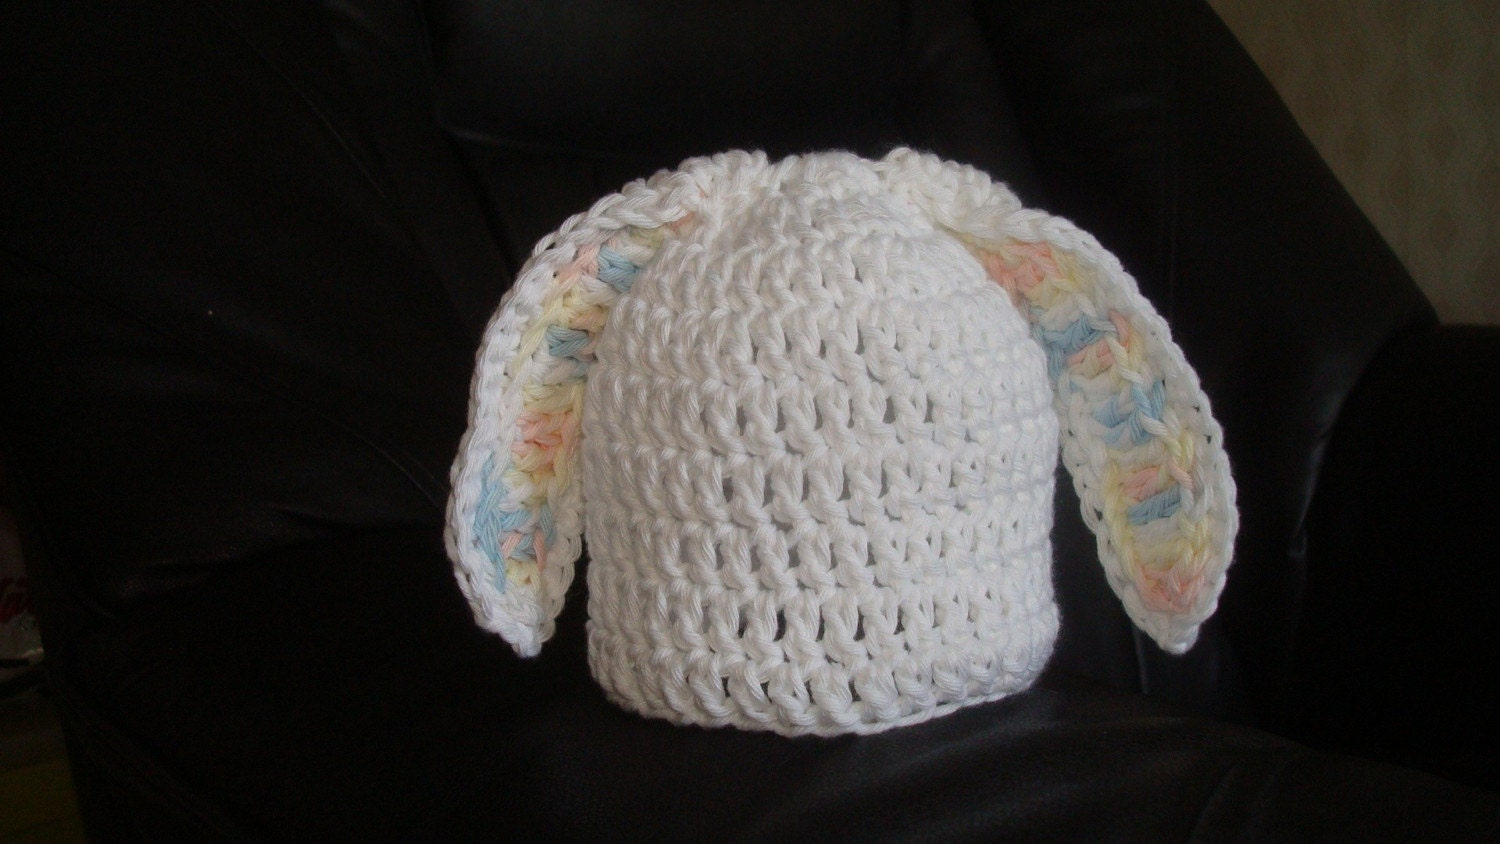 Snow-white cotton Bunny hat with funny ears. Sizes 0-12 month. Perfect for a gift or for a photo prop. Item 064